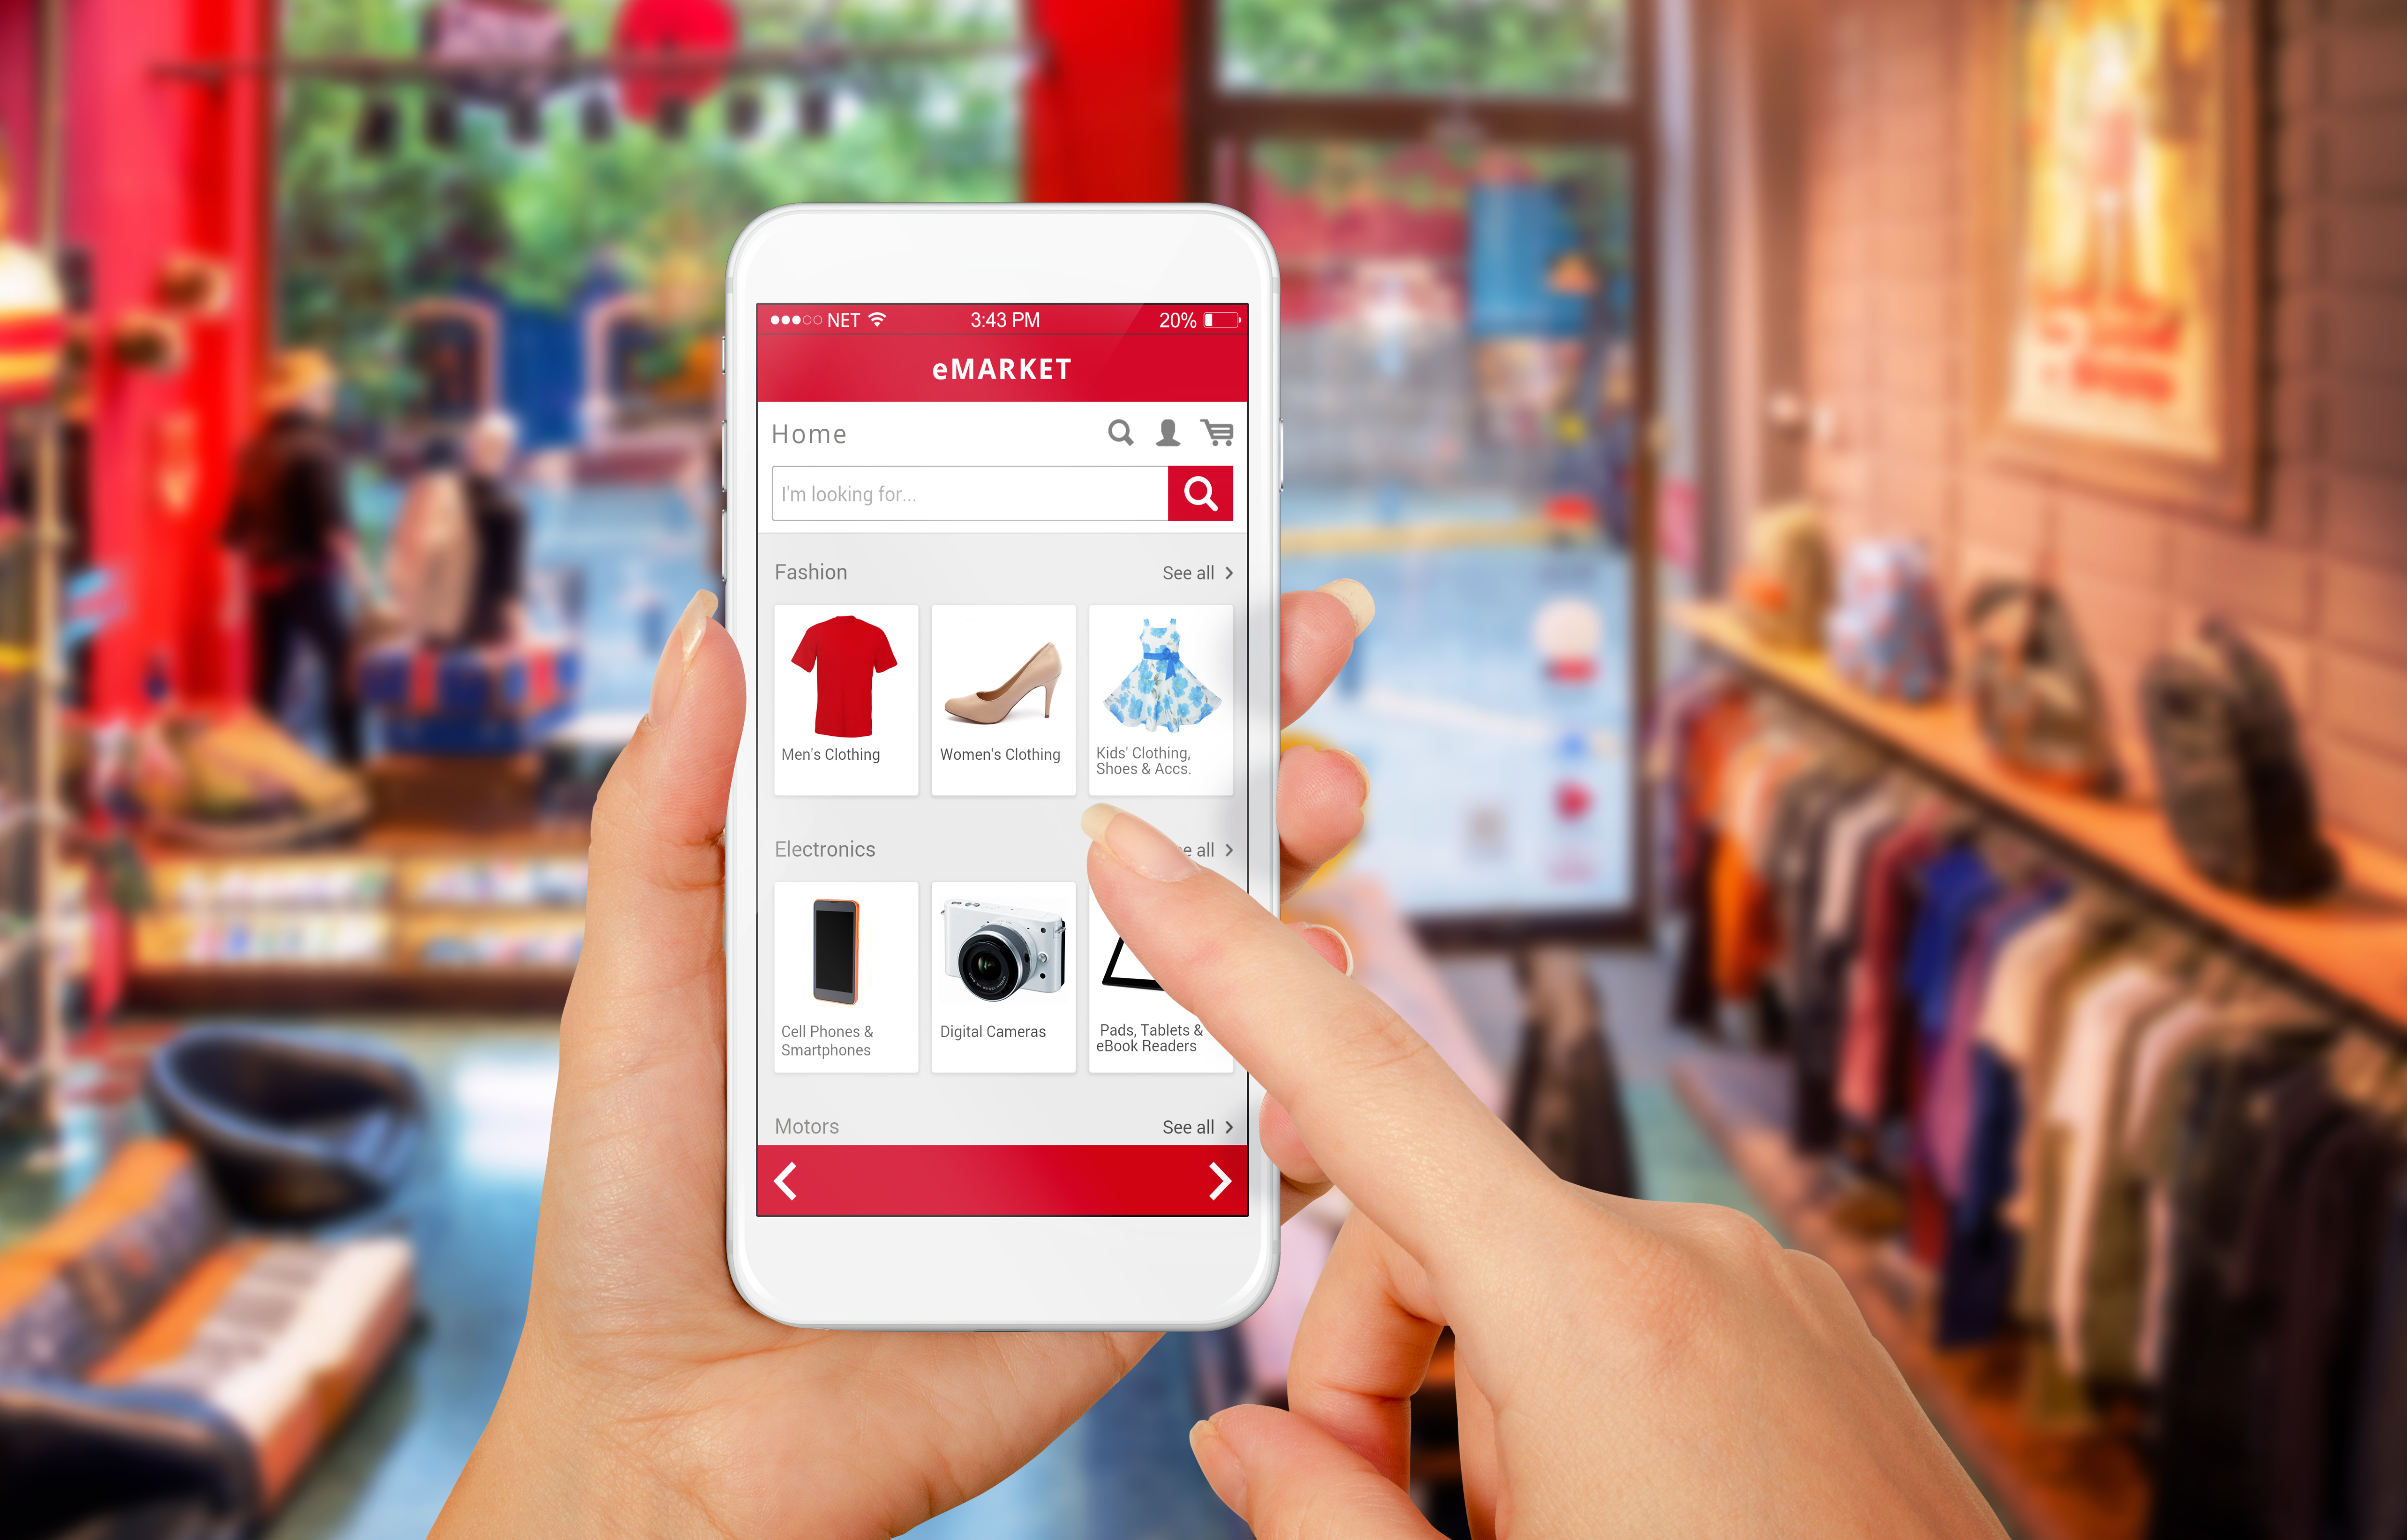 Smartphone being used to complete an e-commerce purchase